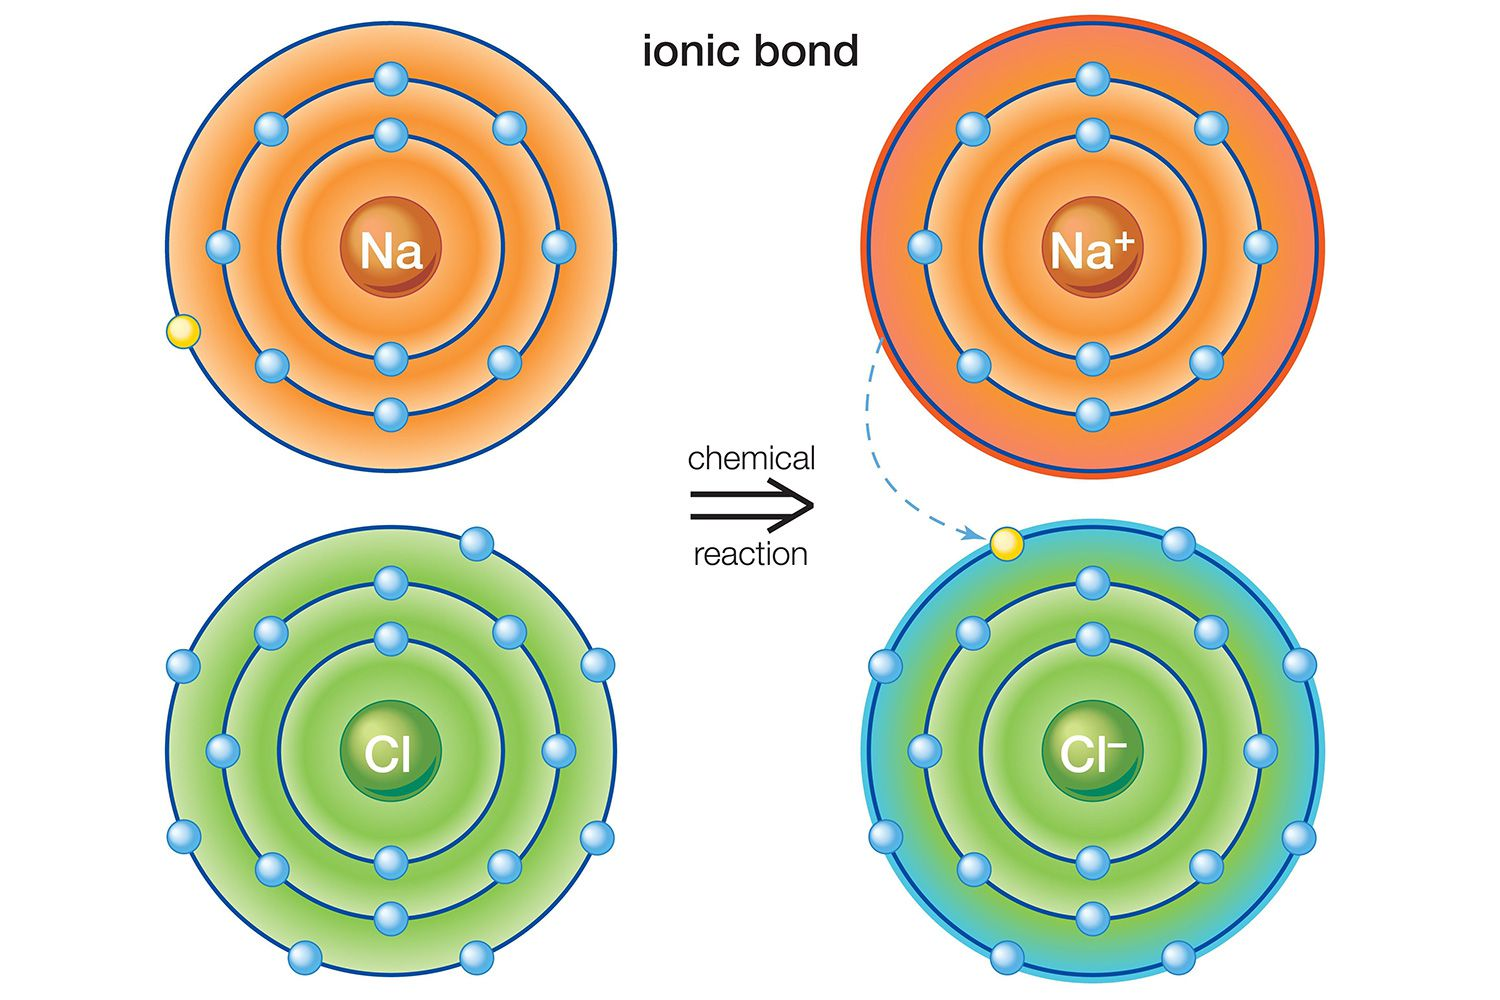 how to form ionic bonds An ionic bond forms between two ions of opposite charges in ionic bonding, electrons transfer from one atom to another the elements take on either a negative or positive charge.